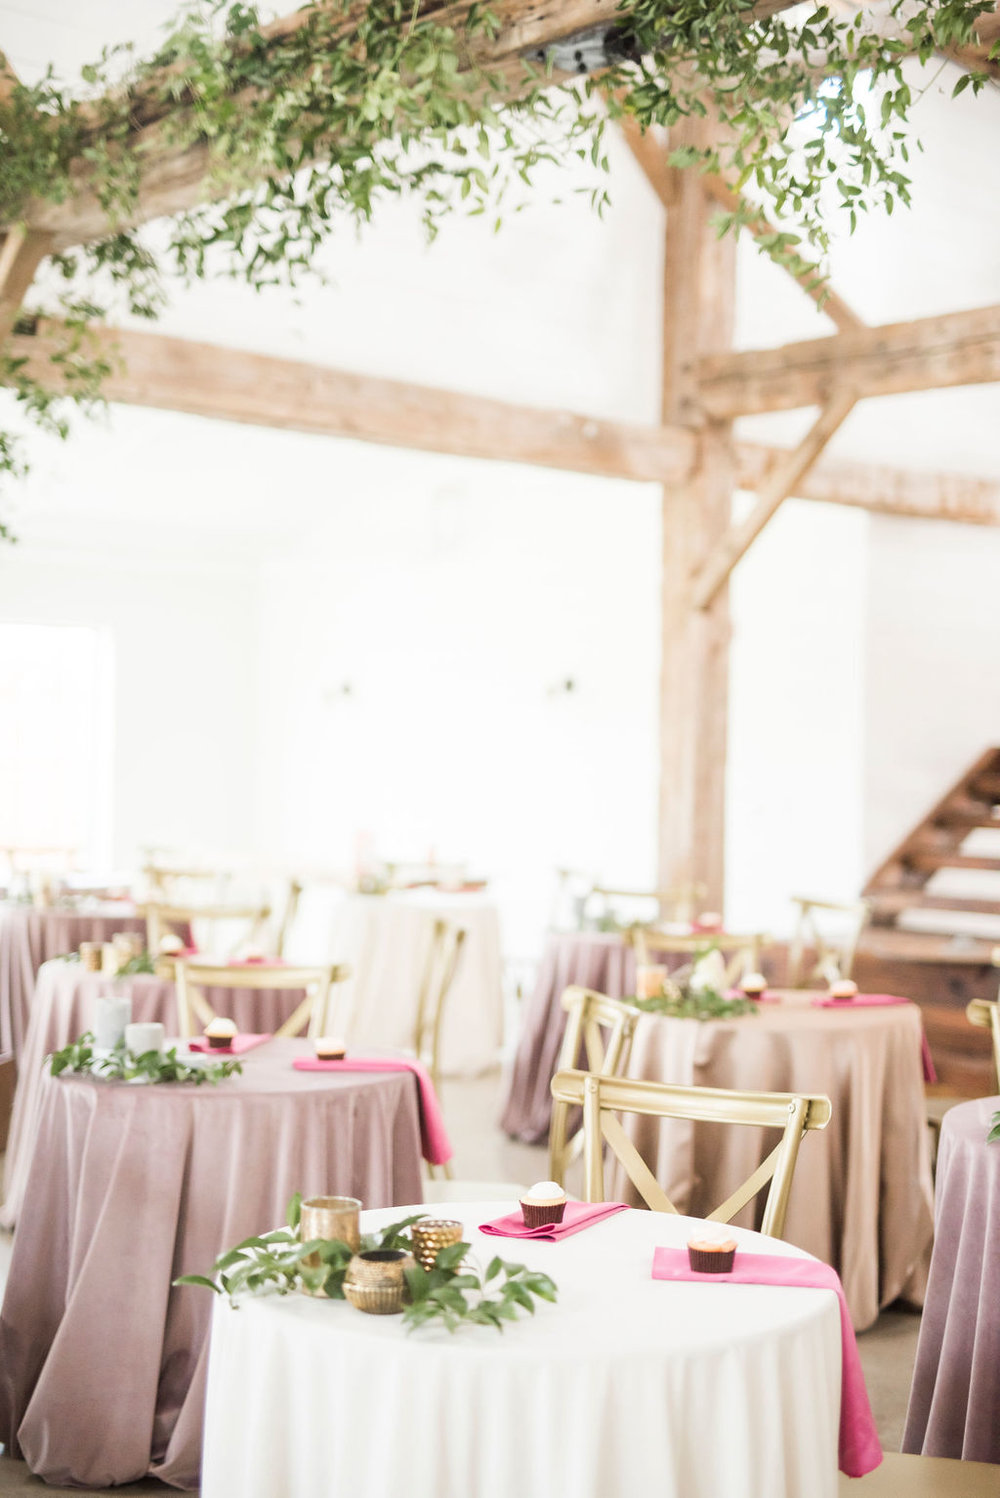 VELVET LINENS WEDDING INSPIRATION THE MEEKERMARK HOUSTON WEDDING VENUE PLANNER DESIGNER EPOCH CO+ DESTINATION WEDDINGS